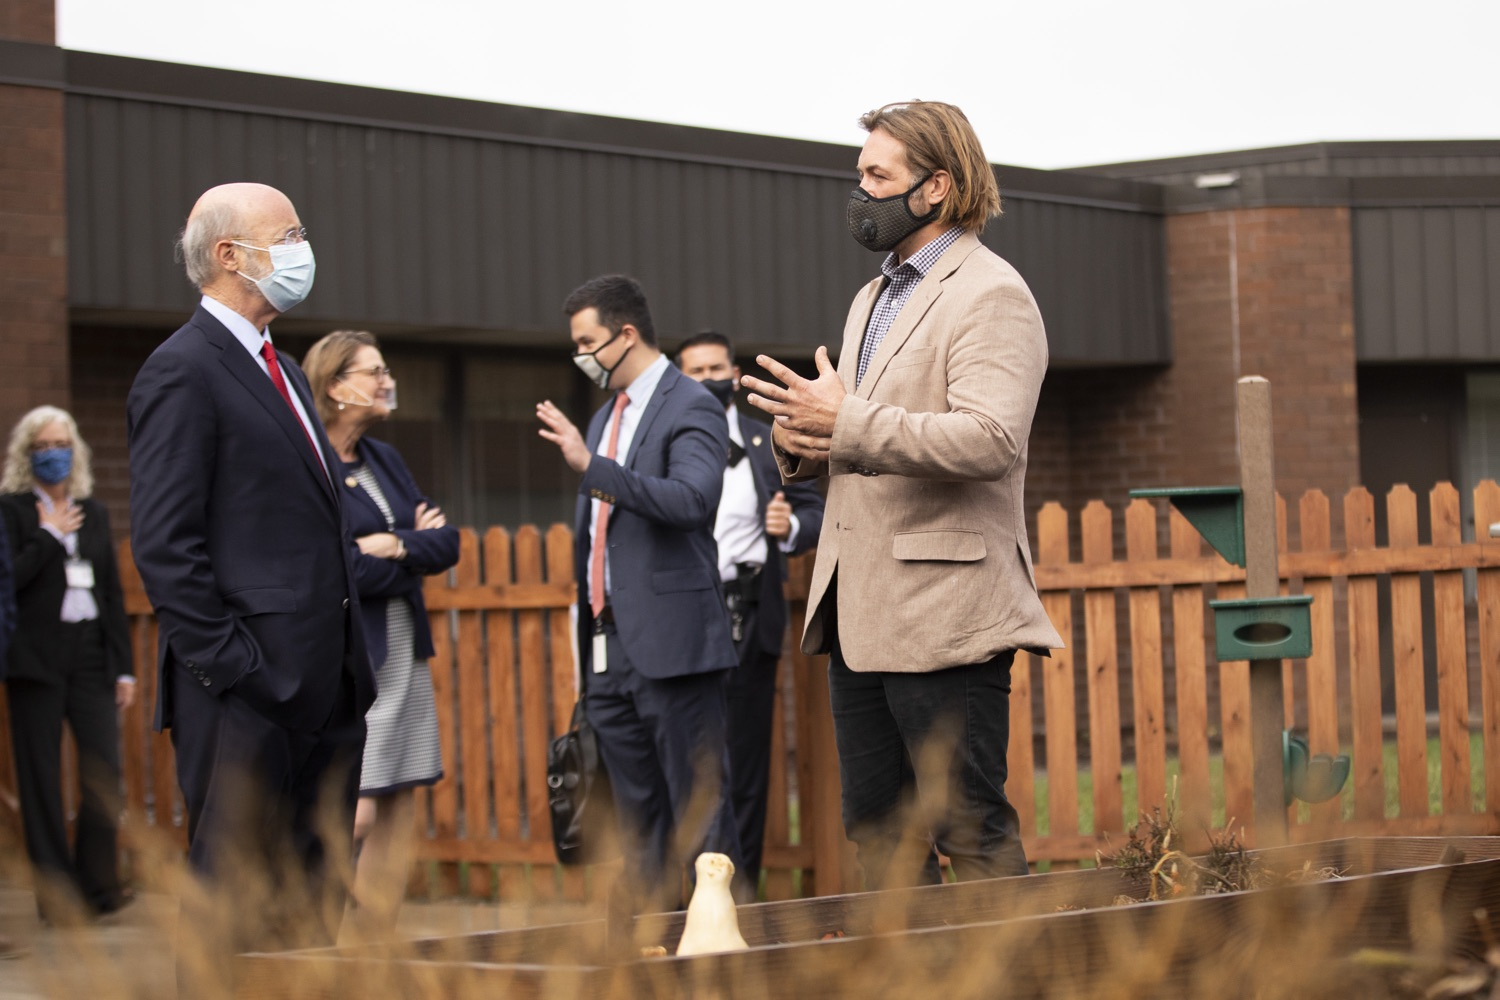 """<a href=""""https://filesource.wostreaming.net/commonwealthofpa/photo/18310_gov_adult_use_cannabis_dz_010.jpg"""" target=""""_blank"""">⇣Download Photo<br></a>Governor Tom Wolf touring The Mountain Center with hemp farmer Eric Titus White. Governor Tom Wolf visited The Mountain Center in Tobyhanna, Monroe County today to talk about the economic growth potential and restorative justice benefits of legalizing adult-use cannabis, something the state General Assembly has not yet done despite multiple requests from the governor and Lieutenant Governor John Fetterman to take up legislation this fall.  Tobyhanna, PA  October 13, 2020"""